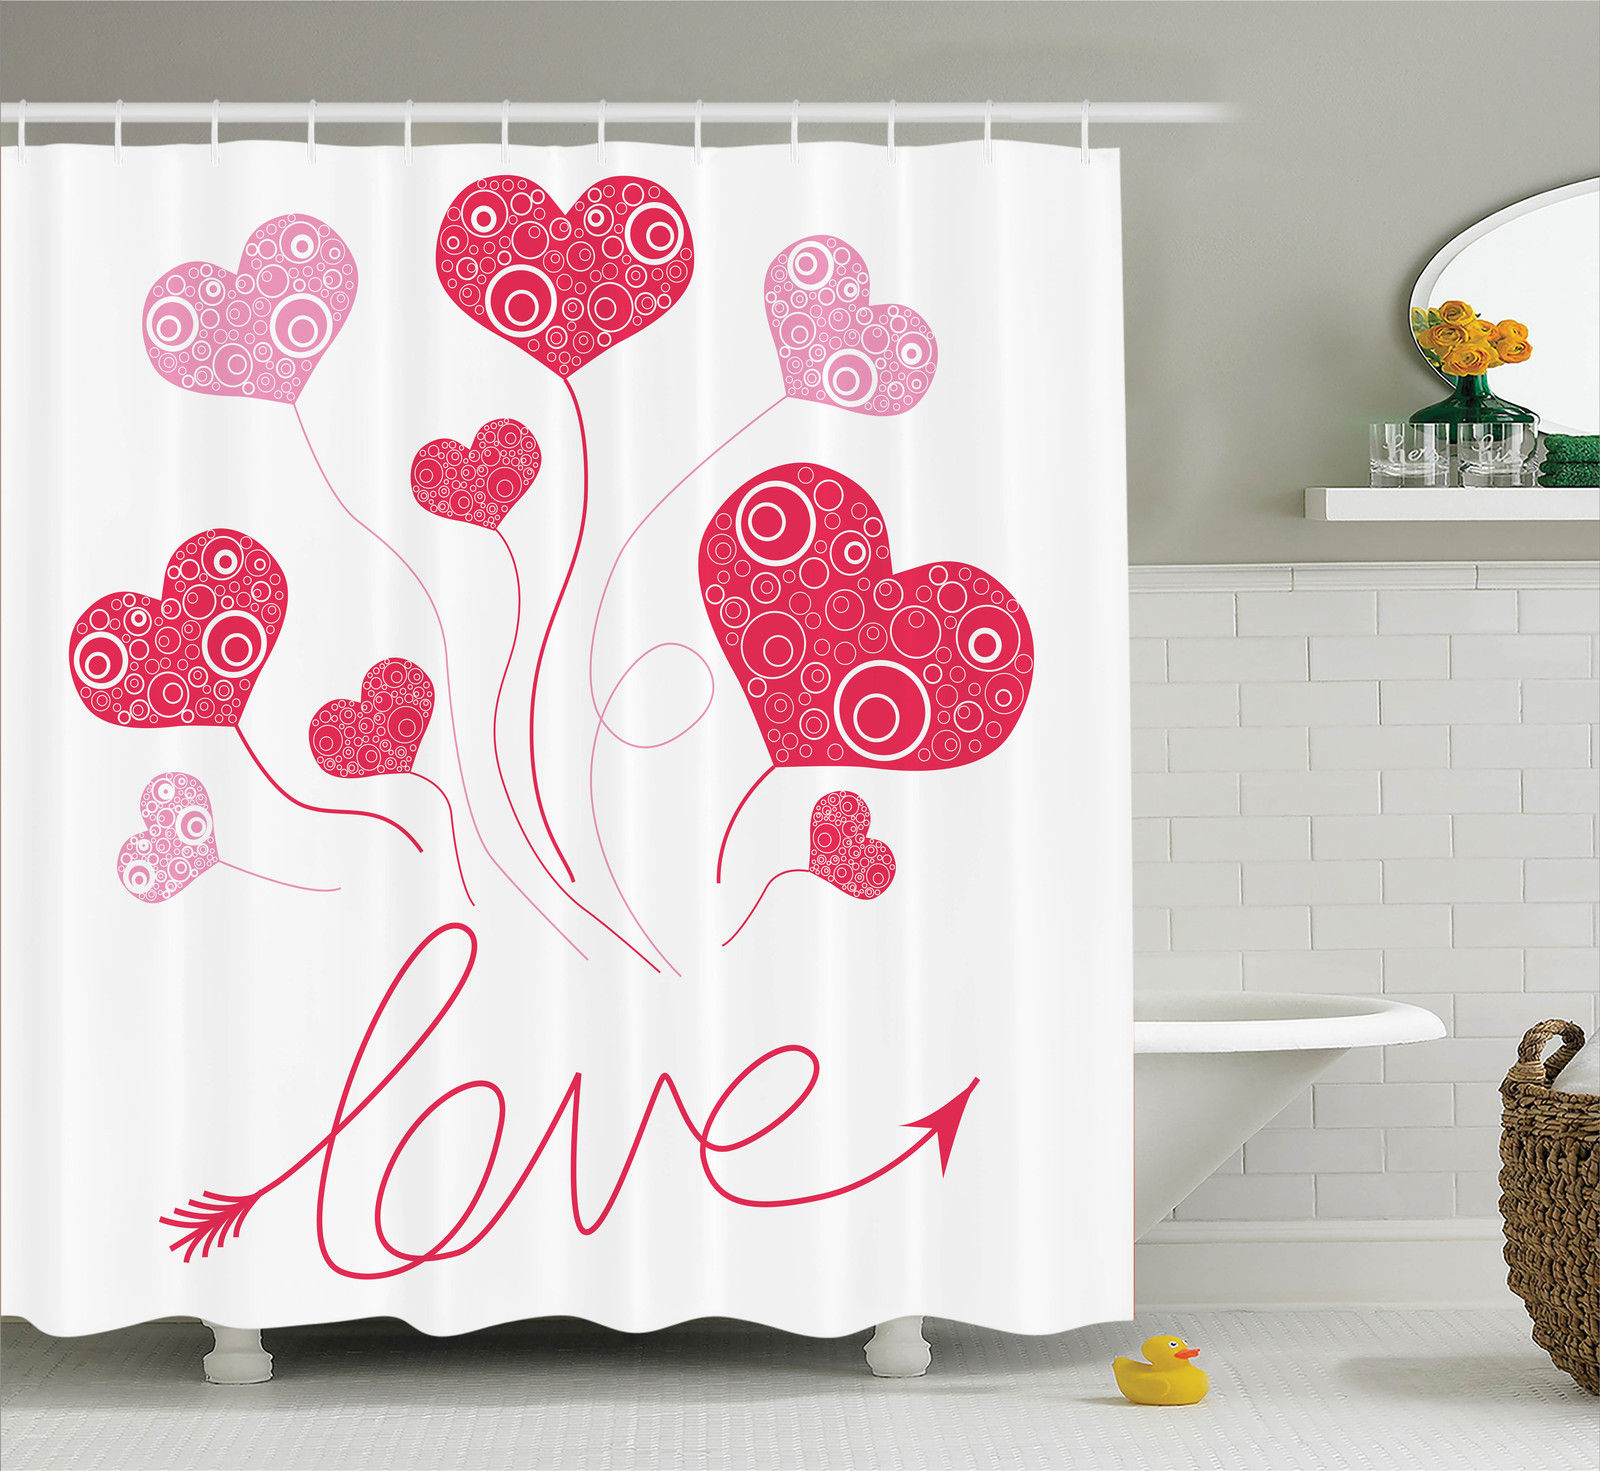 Love Decor Shower Curtain Set, Love Heart Shaped Balloons Party Entertainment Happiness Glossy Retro, Bathroom Accessories, 69W X 70L Inches, By Ambesonne